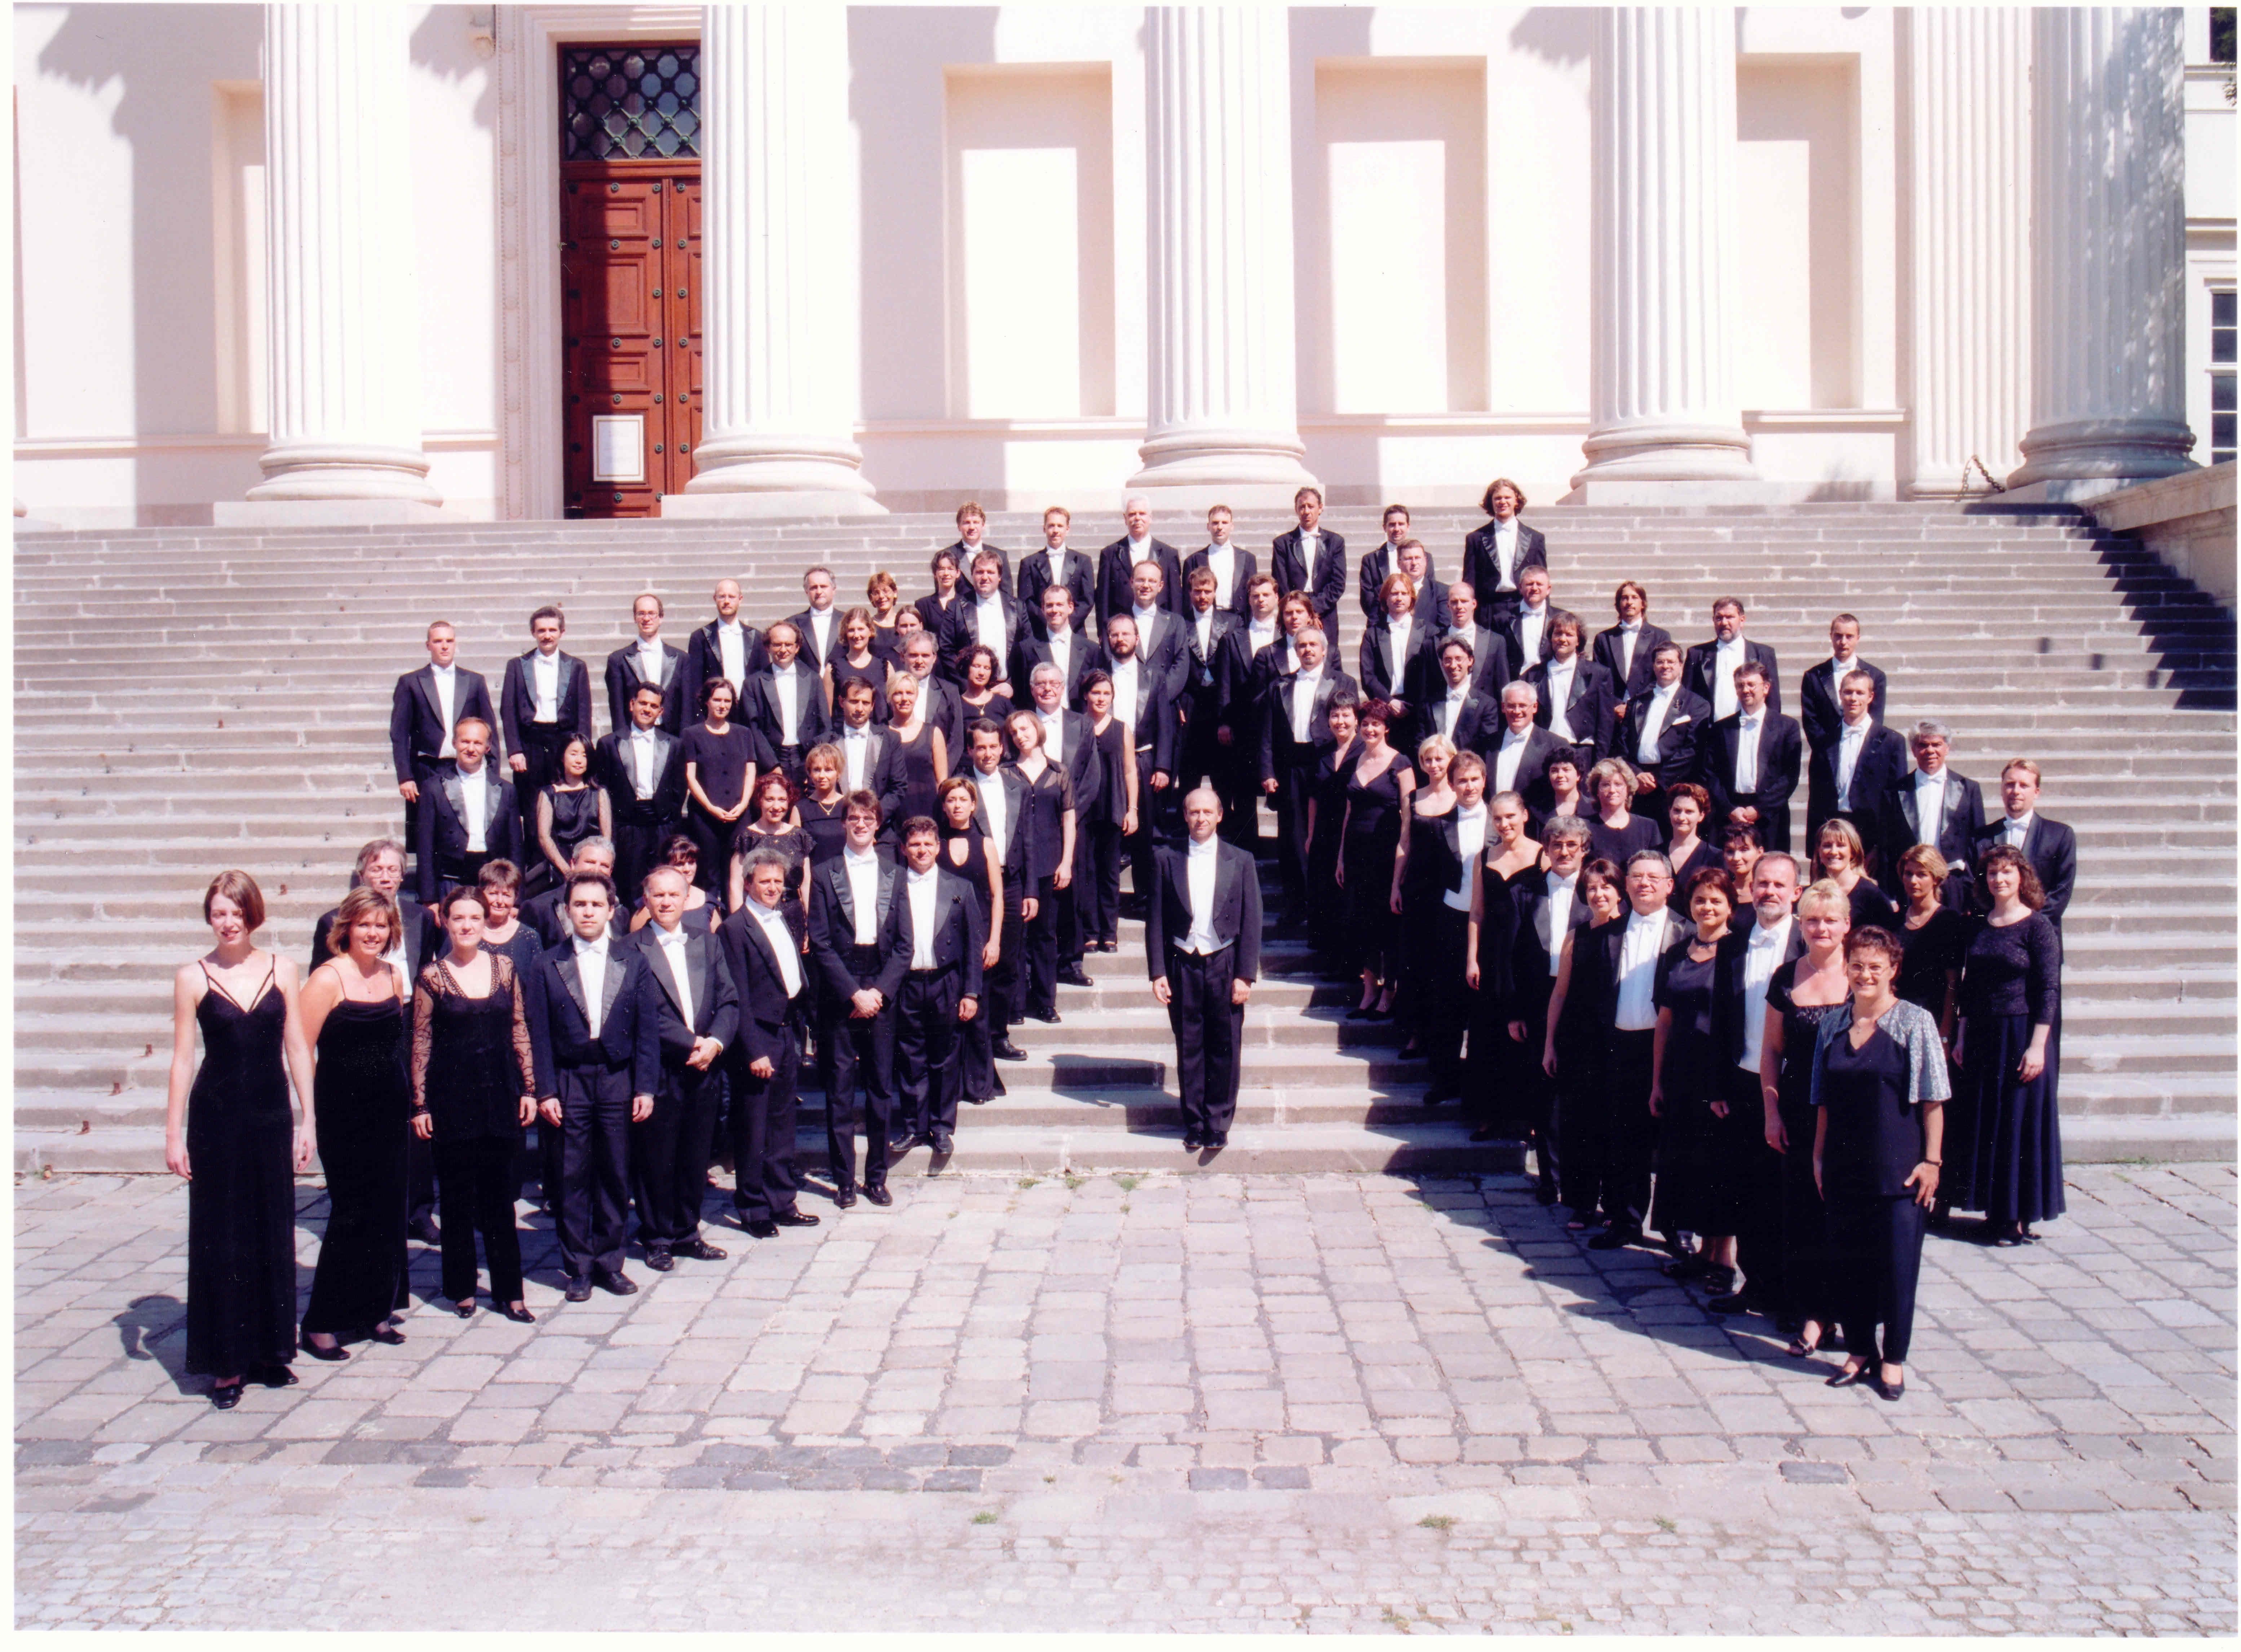 Uniquely Hungary: The Budapest Festival Orchestra, By Anne Zwack